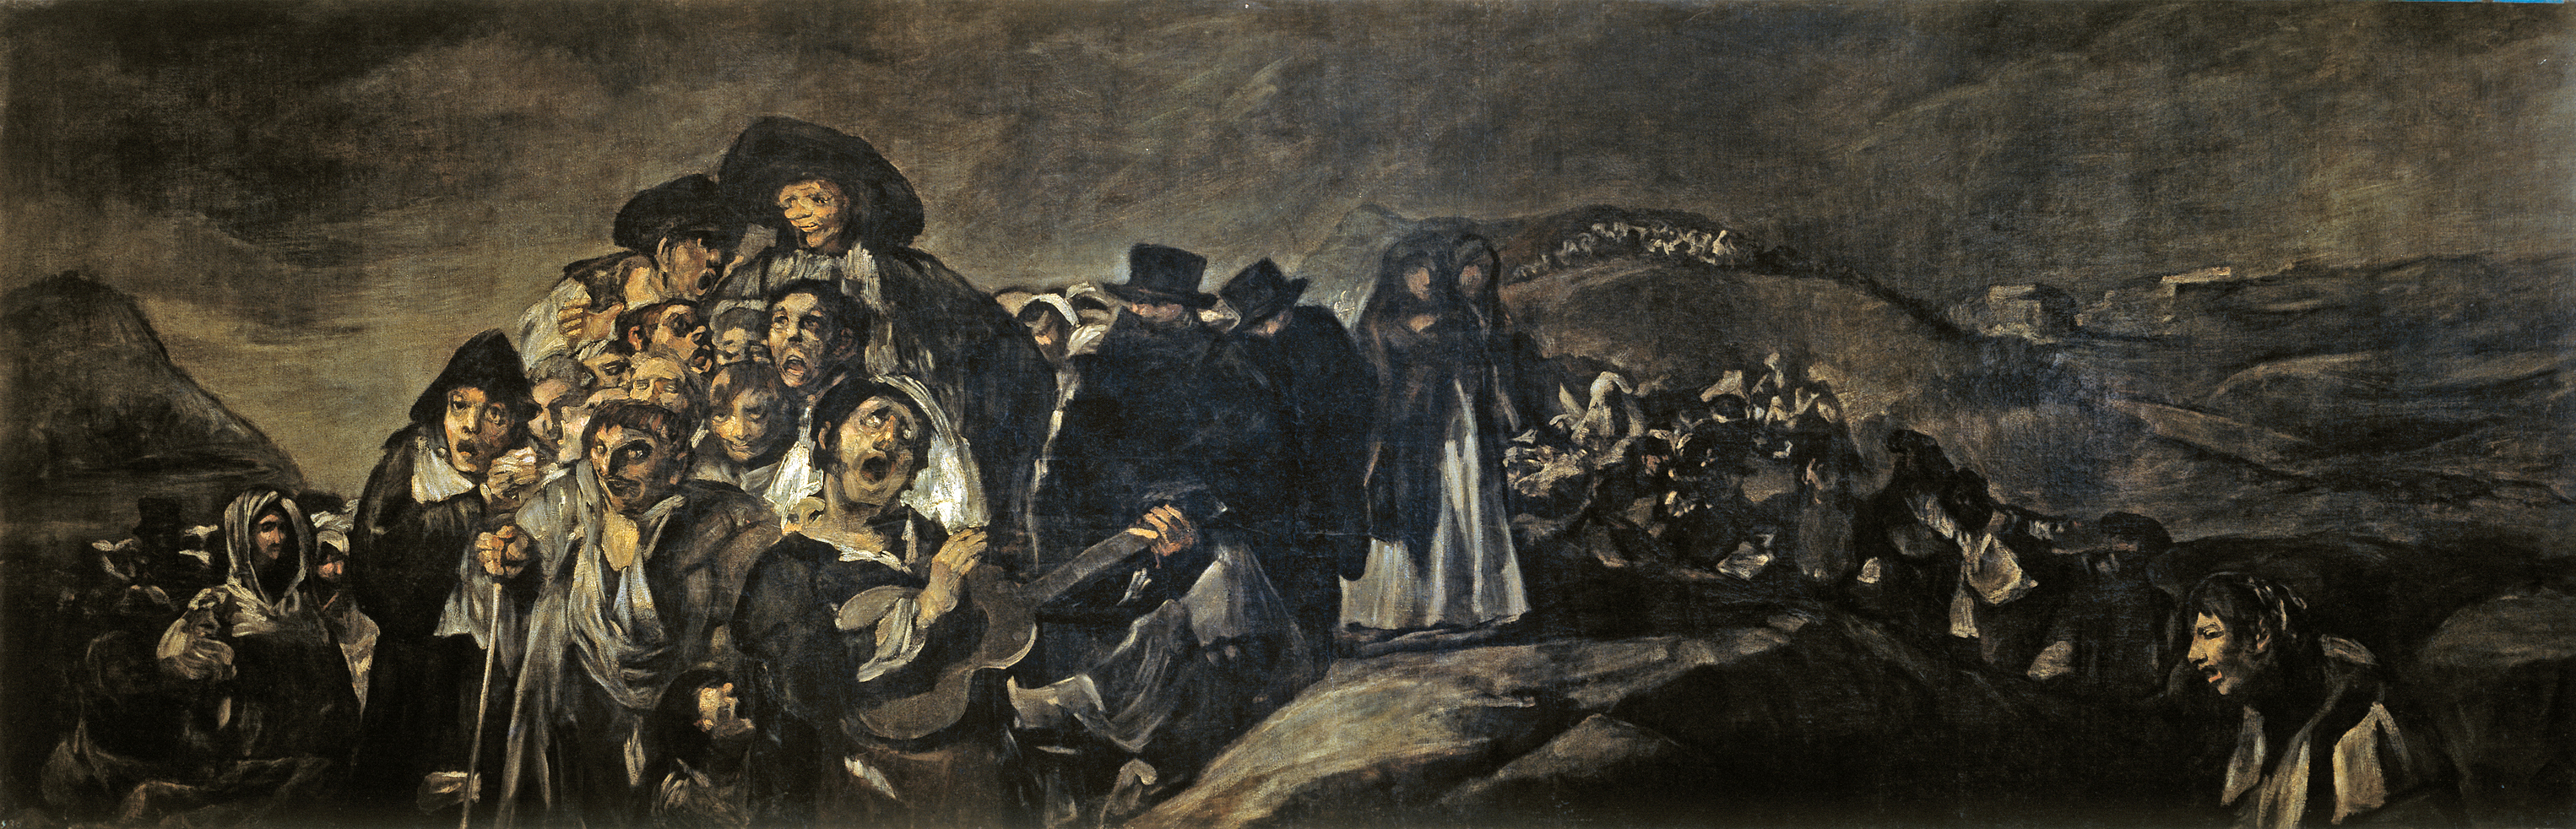 Goya In Hell The Bloodbath That Explains His Most